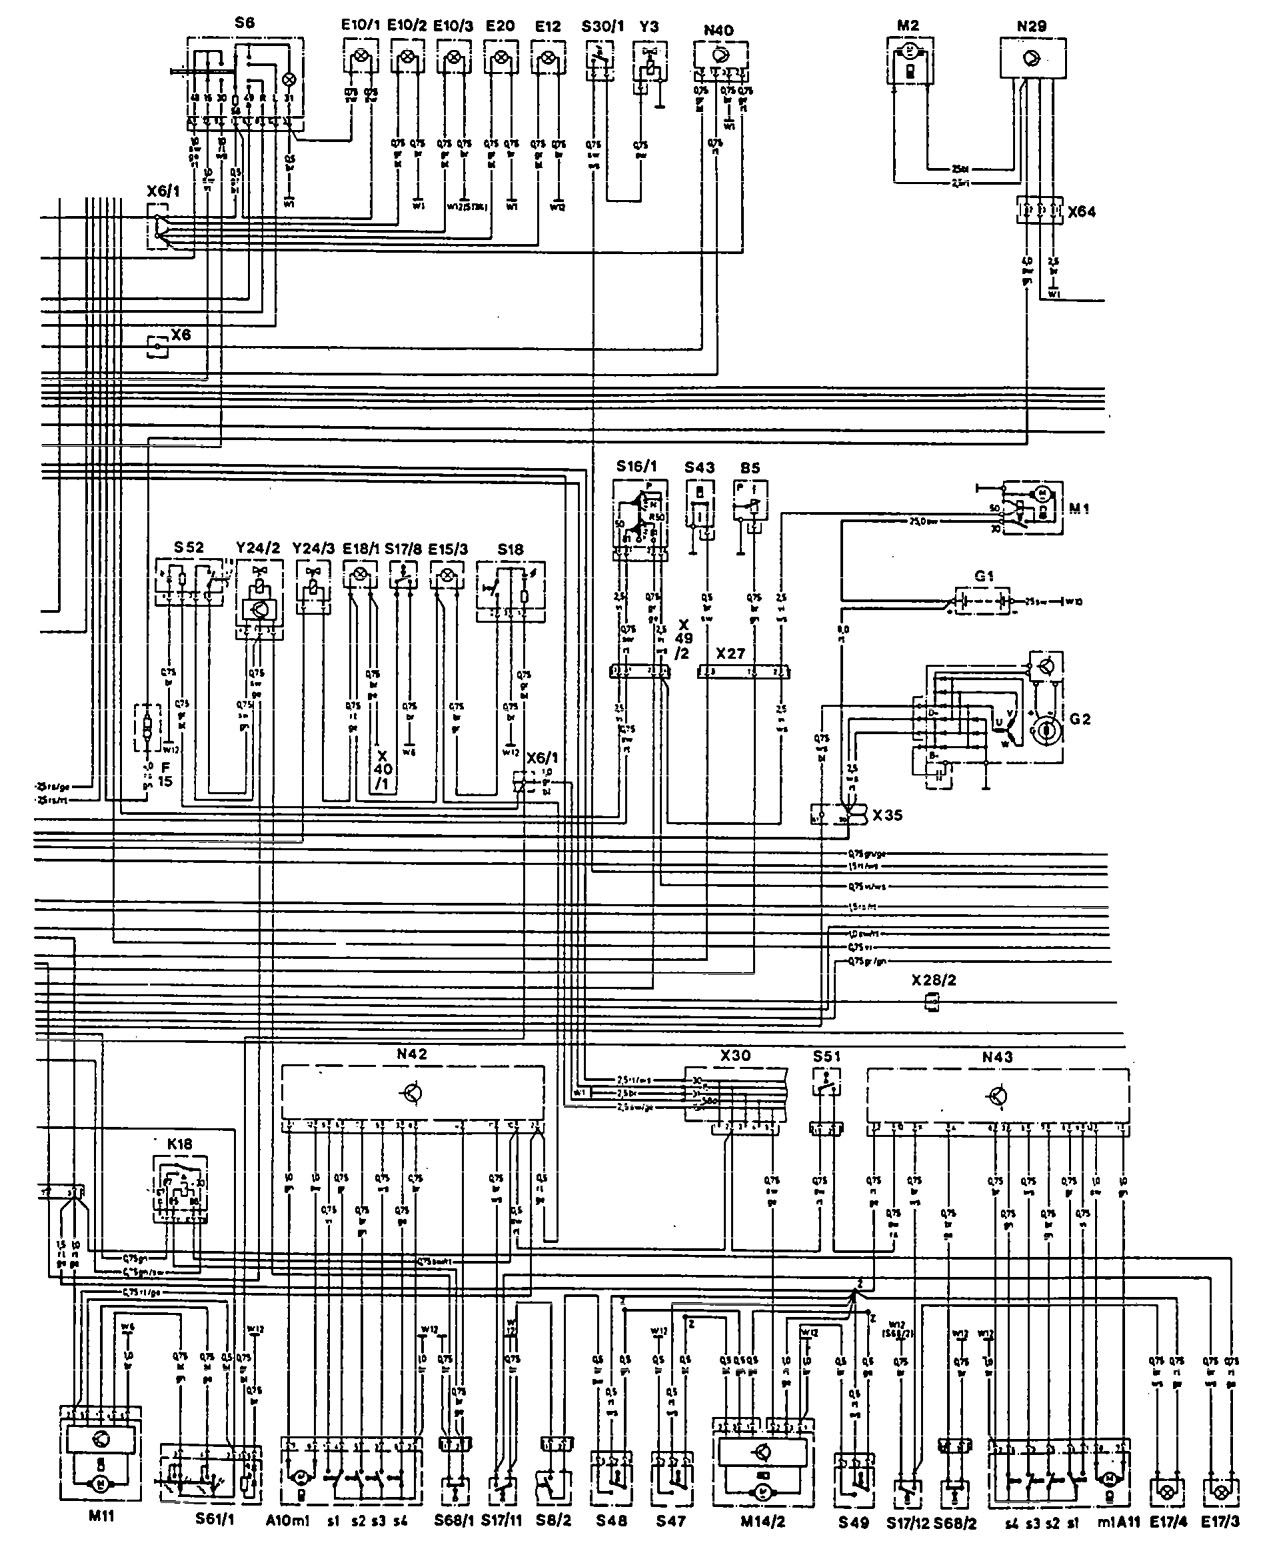 Wiring Diagram For Mercedes 300ce House Symbols 1974 Benz Diagrams 1992 1993 Starting Rh Carknowledge Info